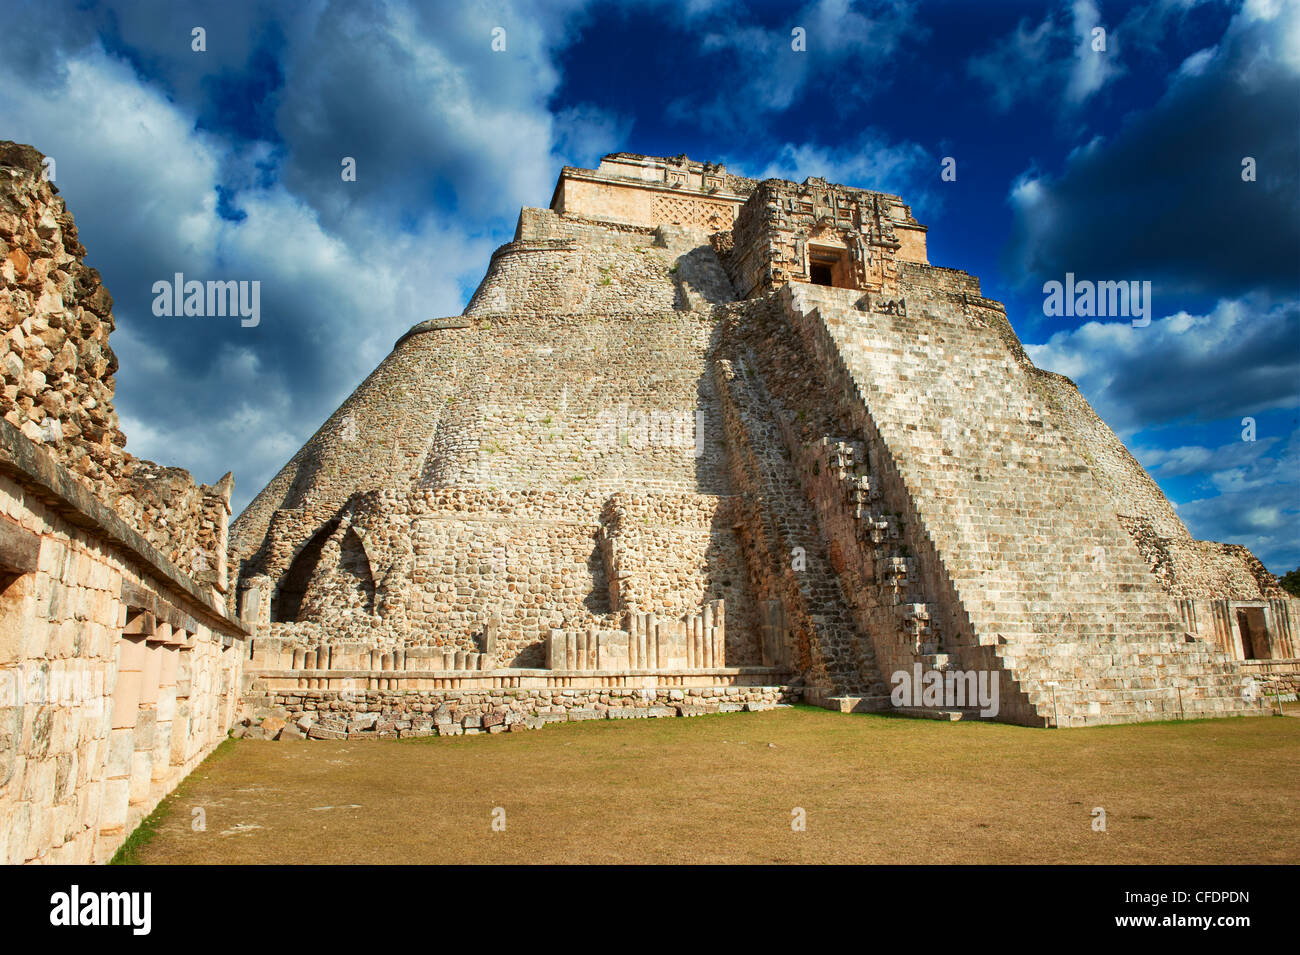 Pyramid of the Magician, Mayan archaeological site, Uxmal, UNESCO World Heritage Site, Yucatan State, Mexico, Stock Photo